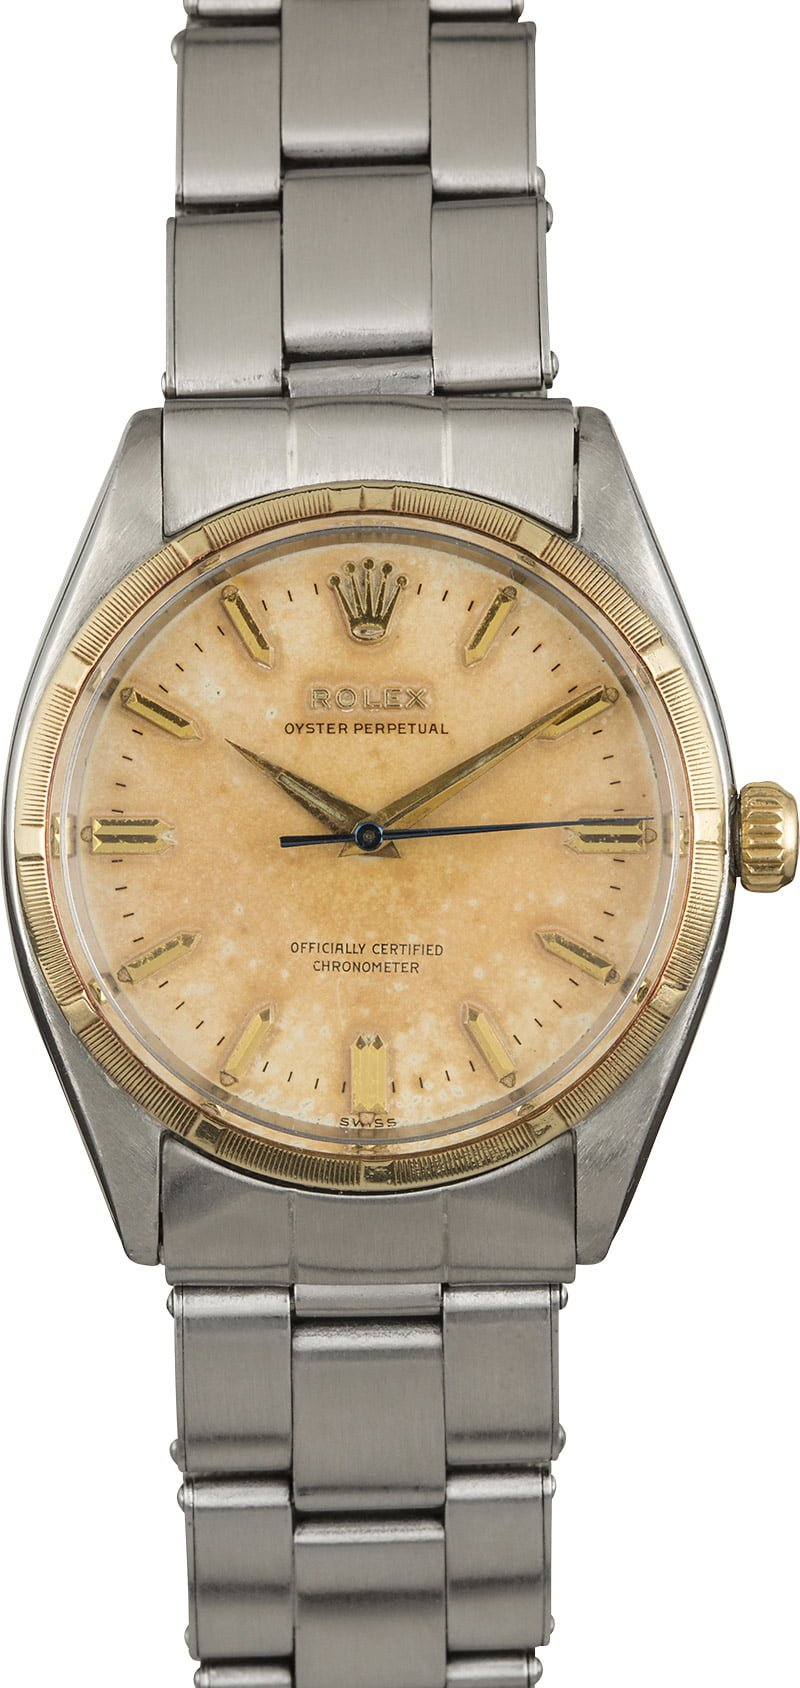 36889571f80 Buy Vintage Rolex Oyster Perpetual 6694 | Bob's Watches - Sku: 122060